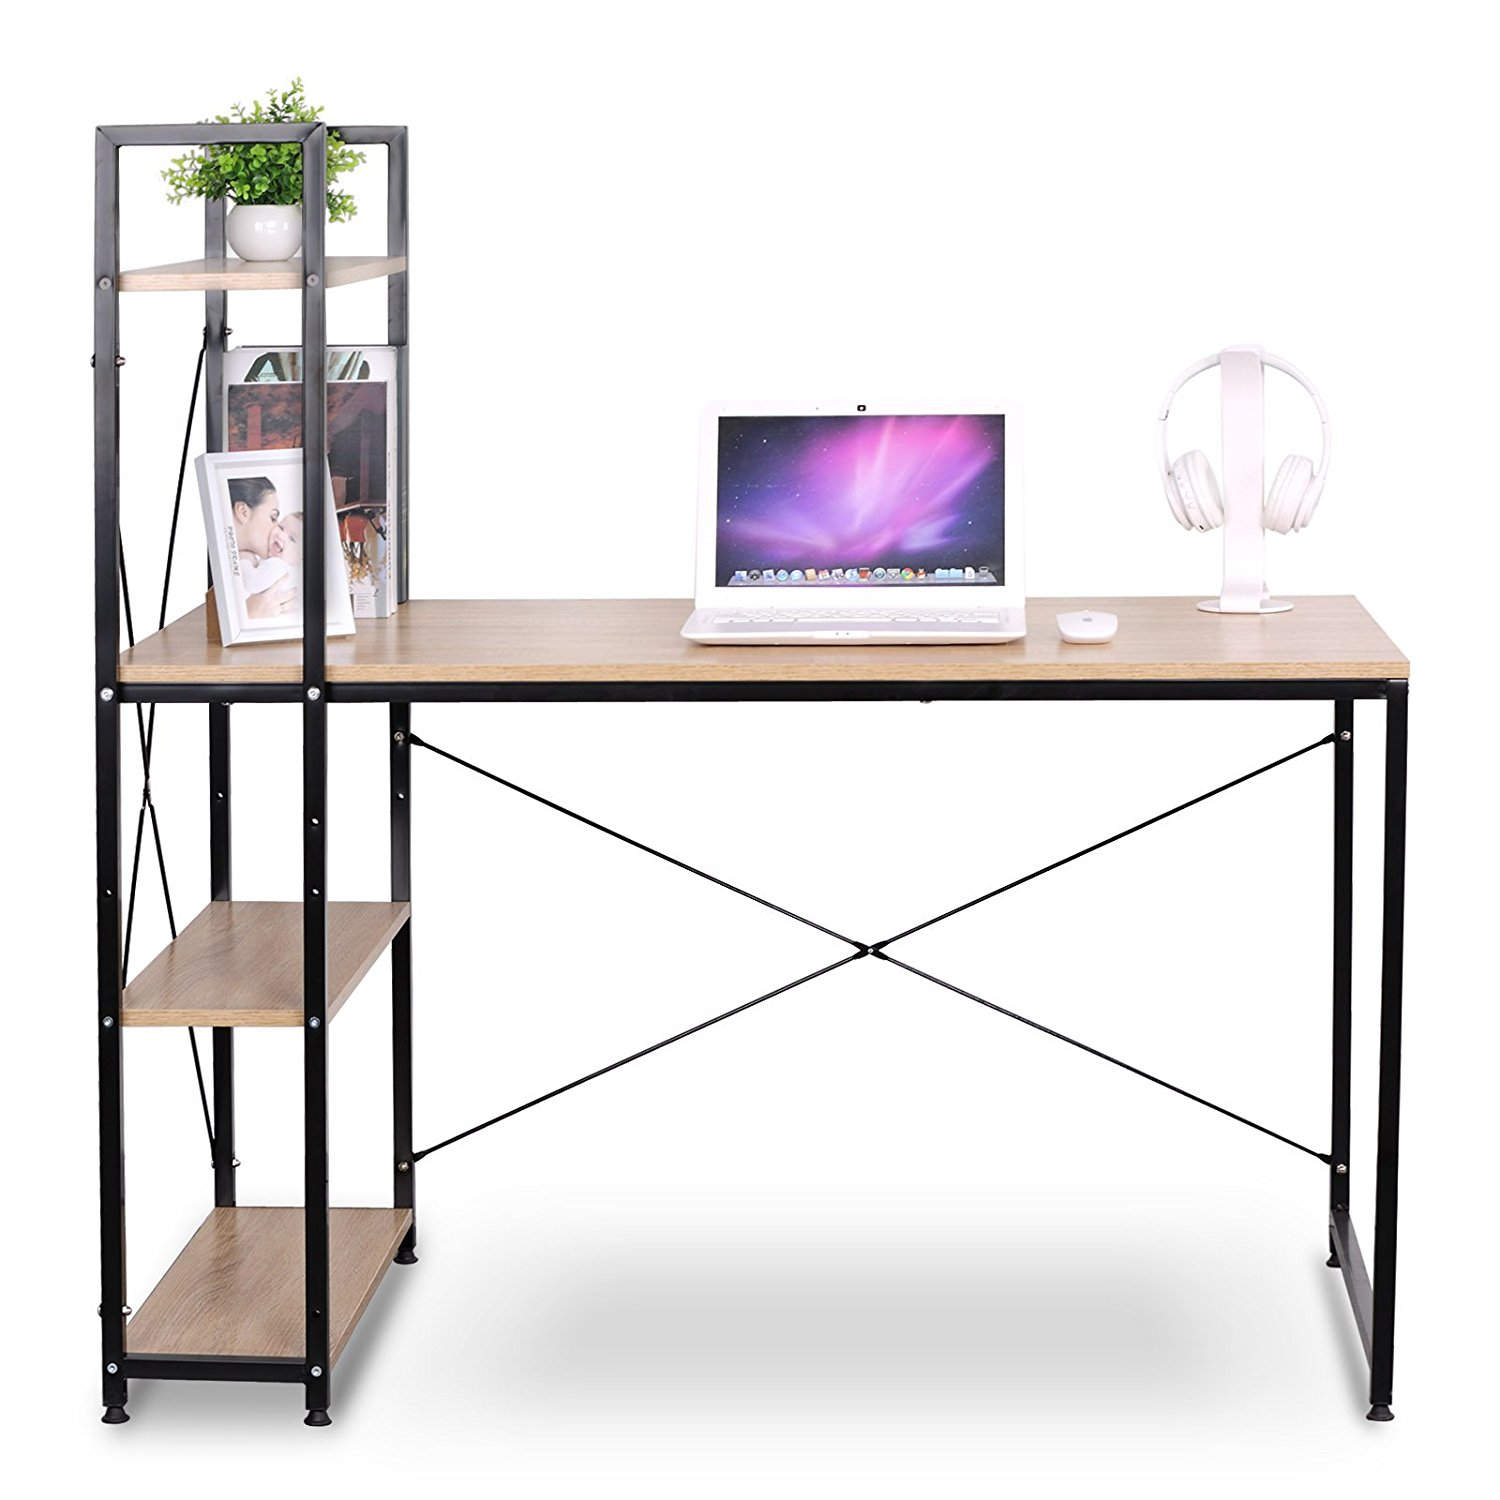 Us $8013 25% Off|portable Corner Computer Desk For Small Spaces With Wood  4 Shelves Storage Office Home Desks Laptop Table-in Laptop Desks From